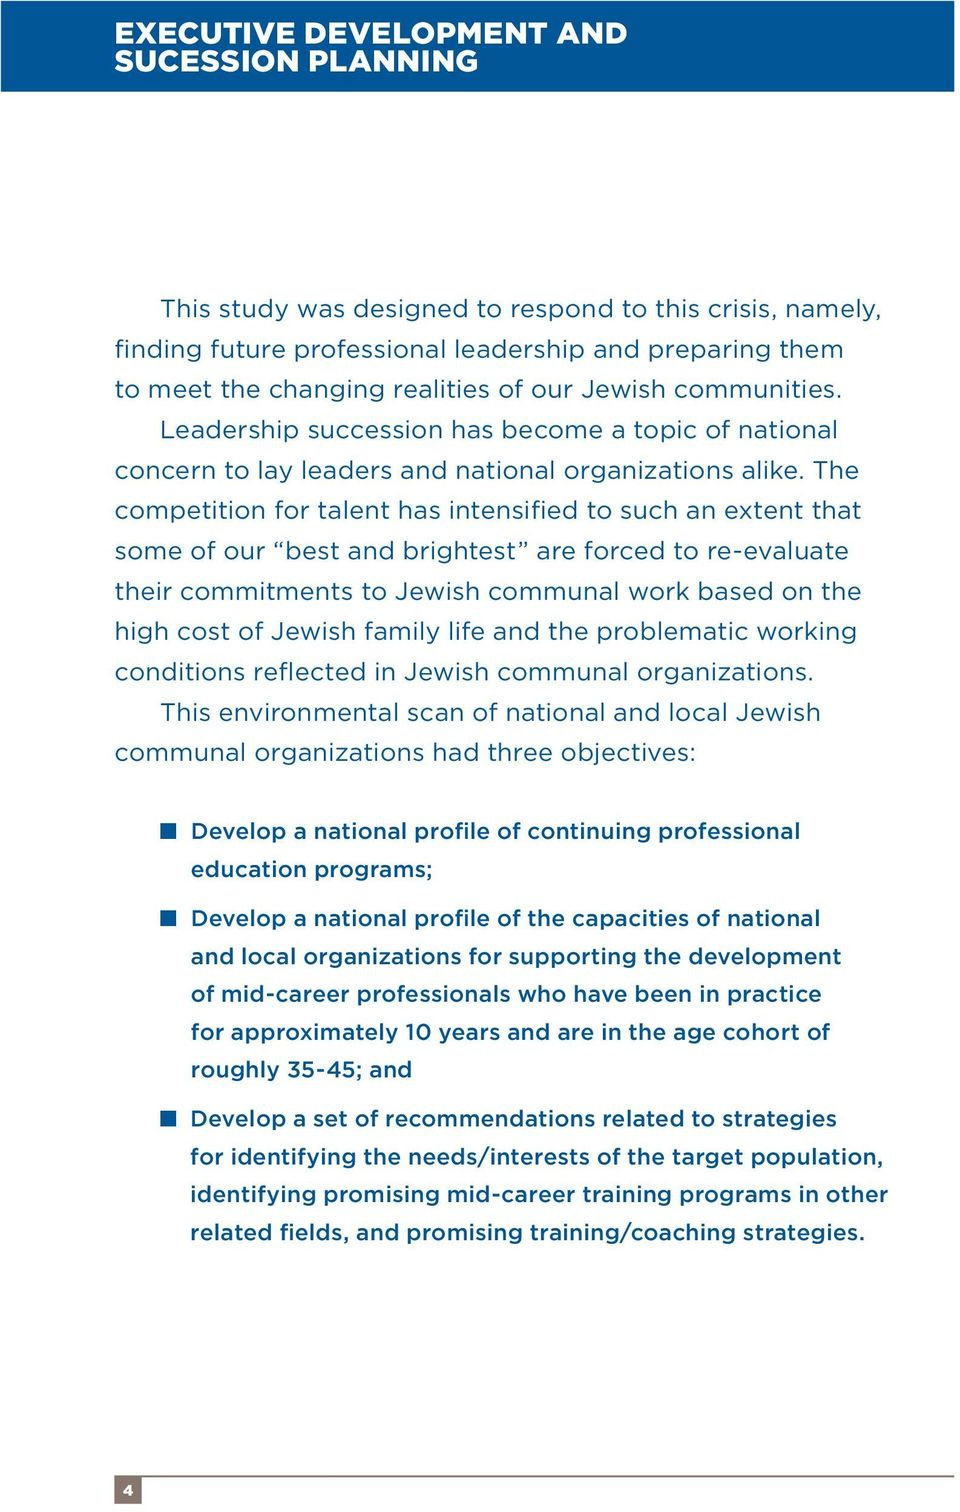 The competition for talent has intensified to such an extent that some of our best and brightest are forced to re-evaluate their commitments to Jewish communal work based on the high cost of Jewish